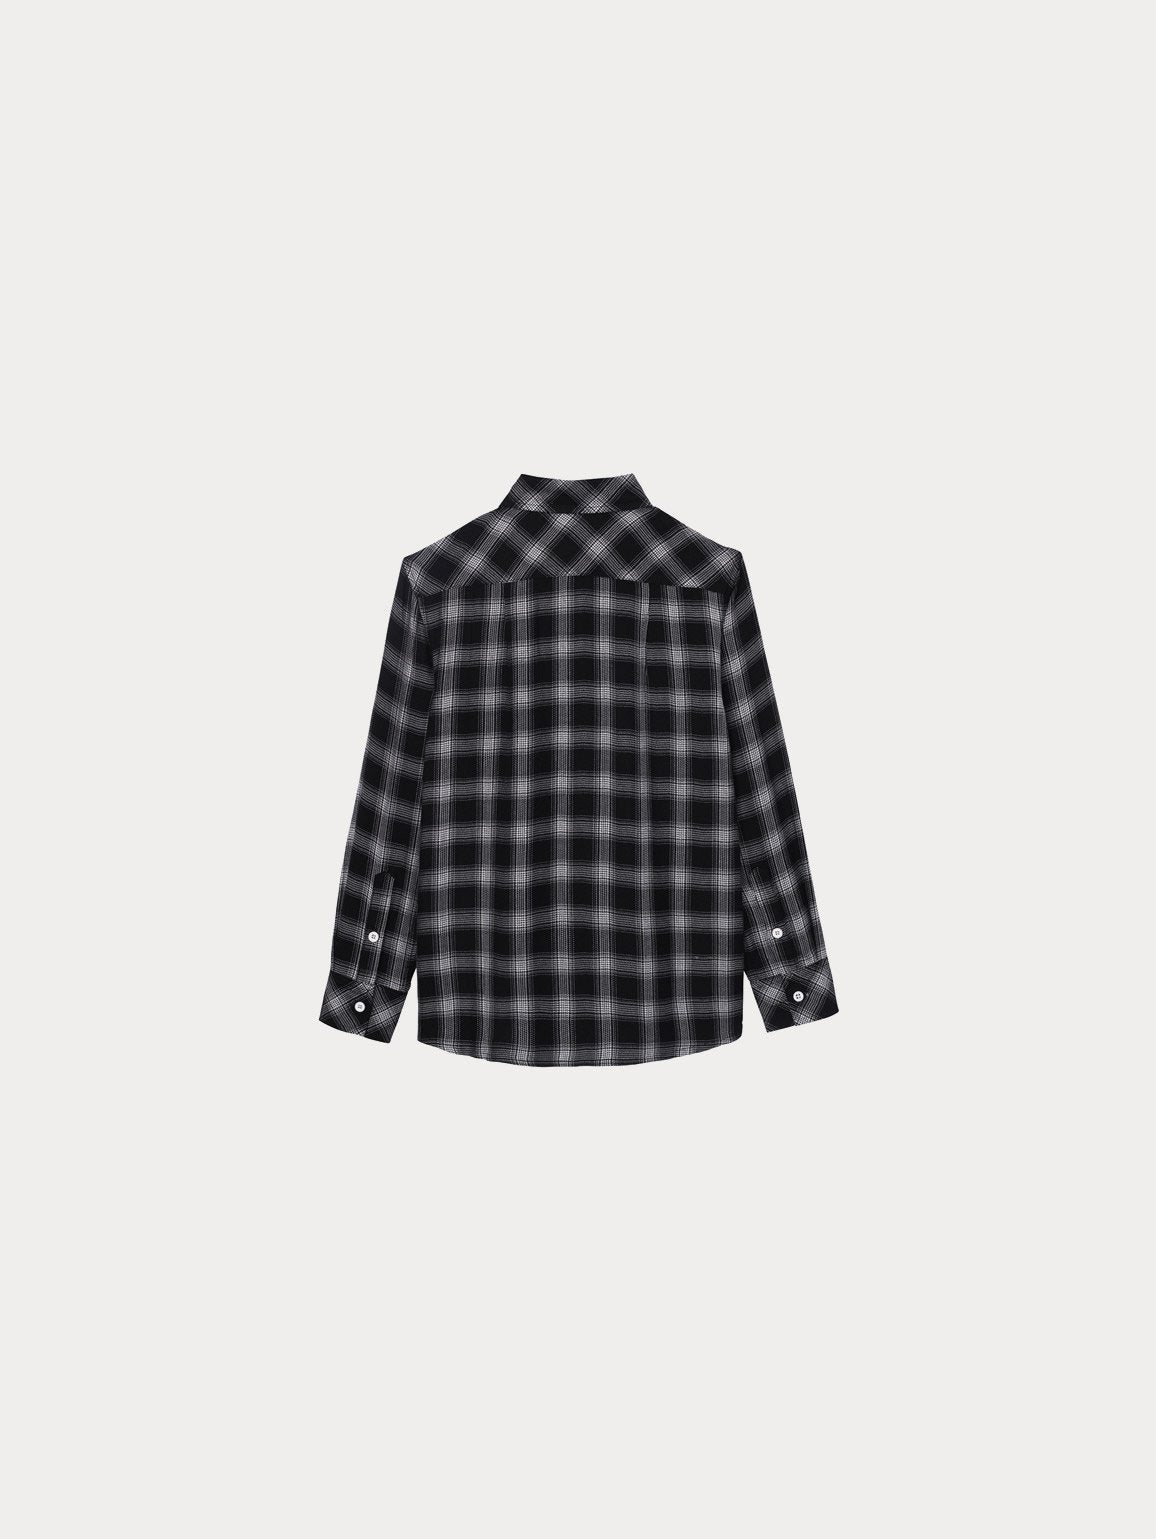 Ash Toddler Unisex Shirt | Black Plaid - DL1961